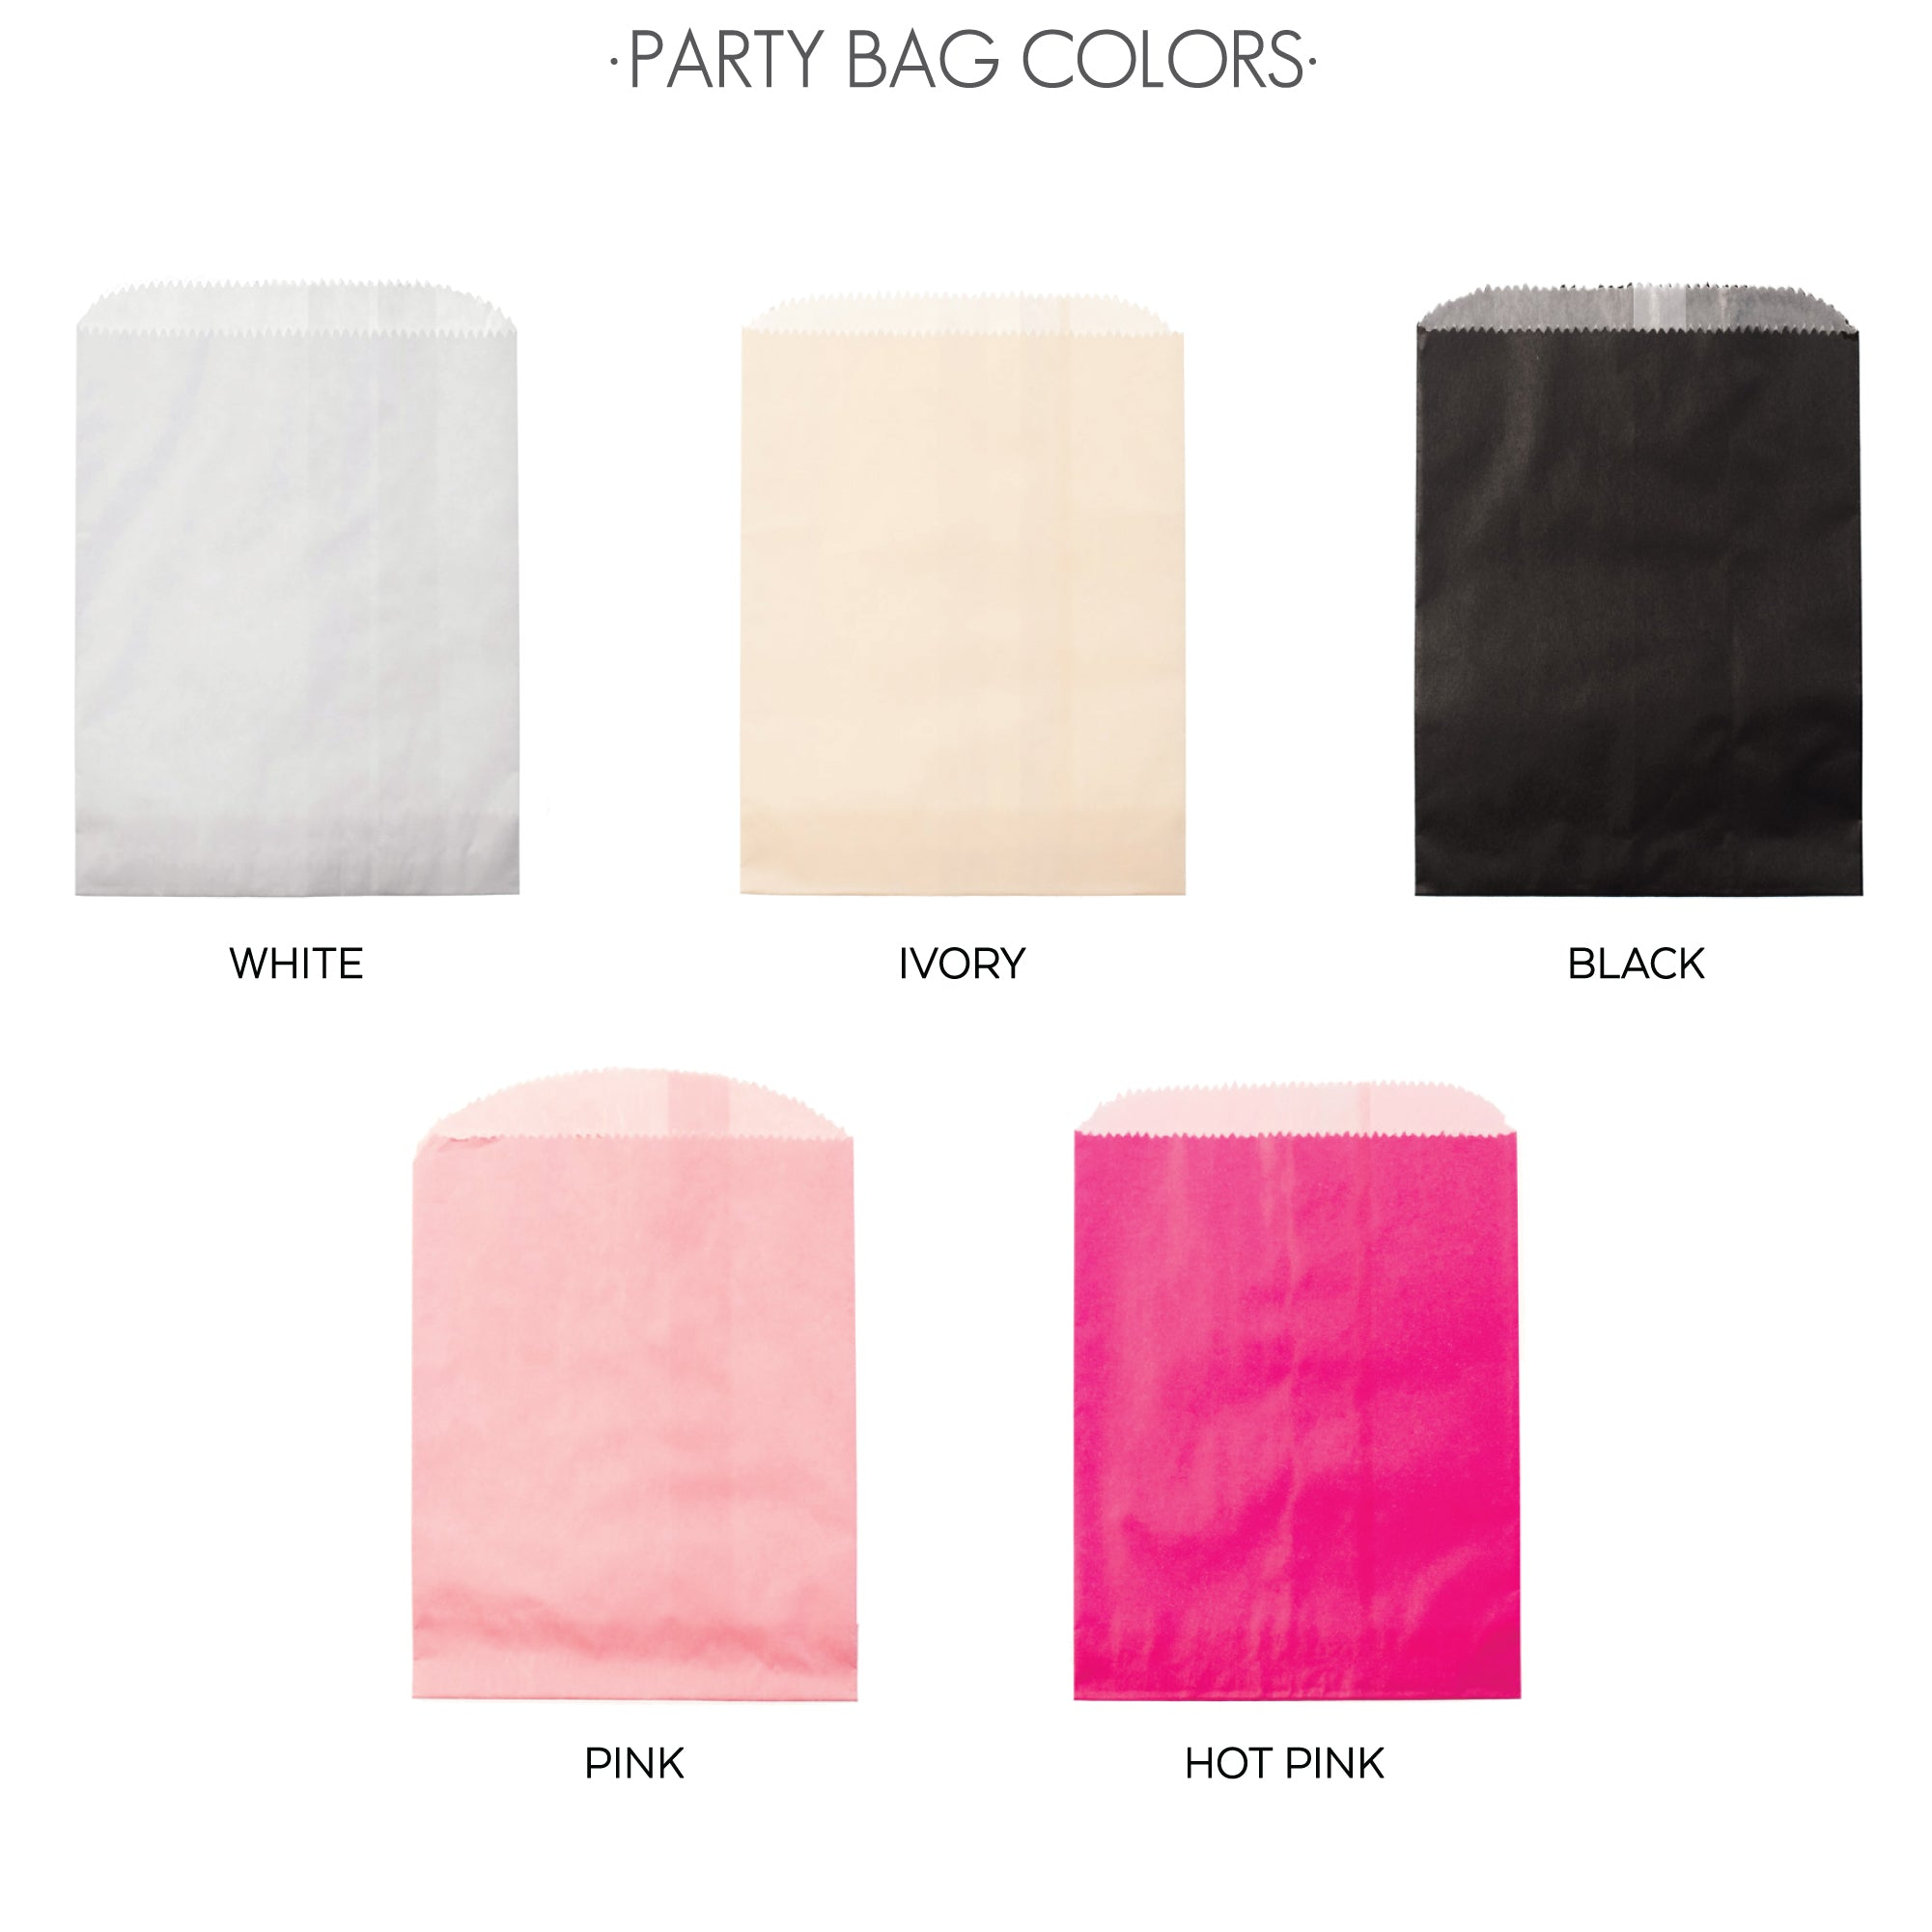 PARTY BAG COLORS